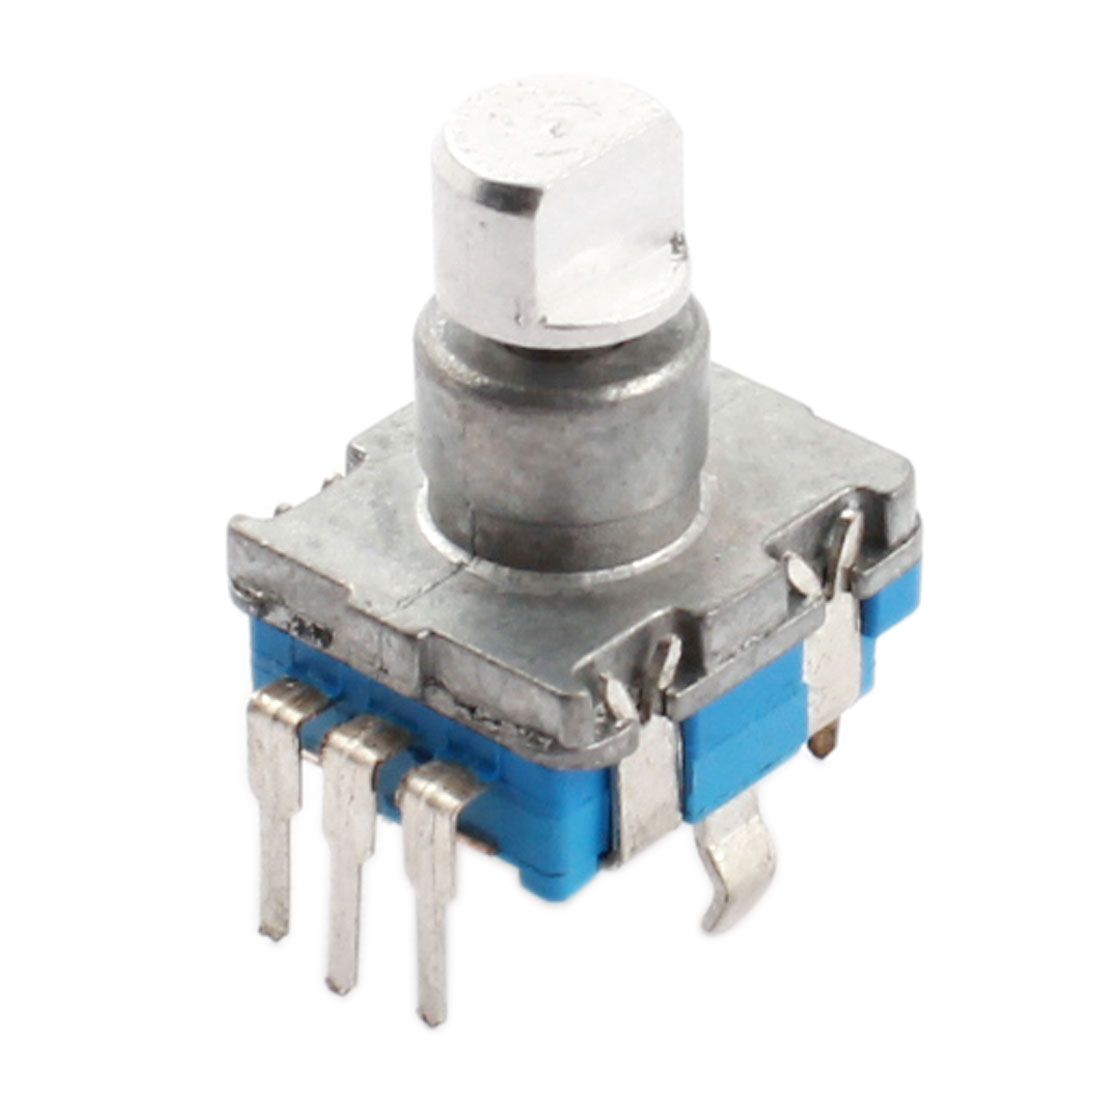 5Pins 20 Detent Points 360 Degree Push Button Rotary Encoder Switch